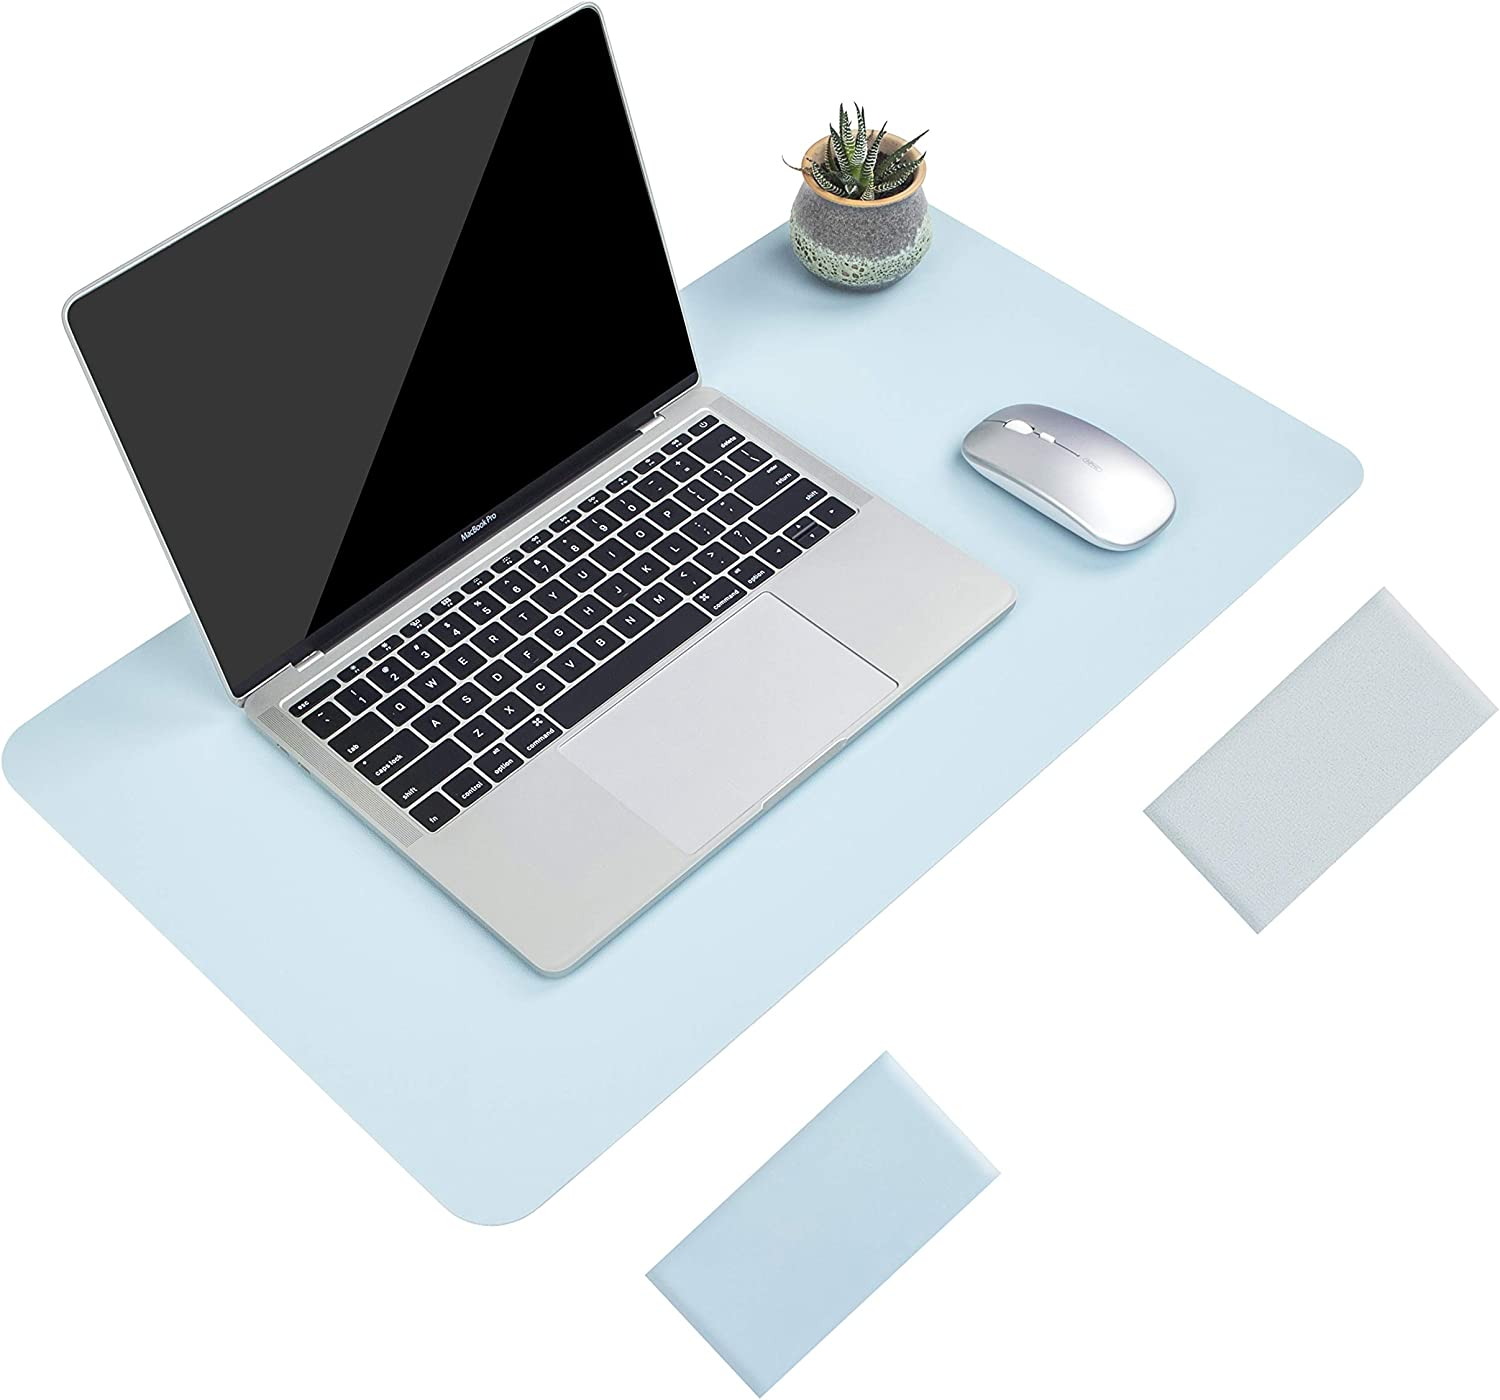 "Non-Slip Desk Pad, Waterproof PVC Leather Desk Table Protector, Ultra Thin Large Mouse Pad, Easy Clean Laptop Desk Writing Mat for Office Work/Home/Decor(Sky Blue, 23.6"" x 13.7"")"